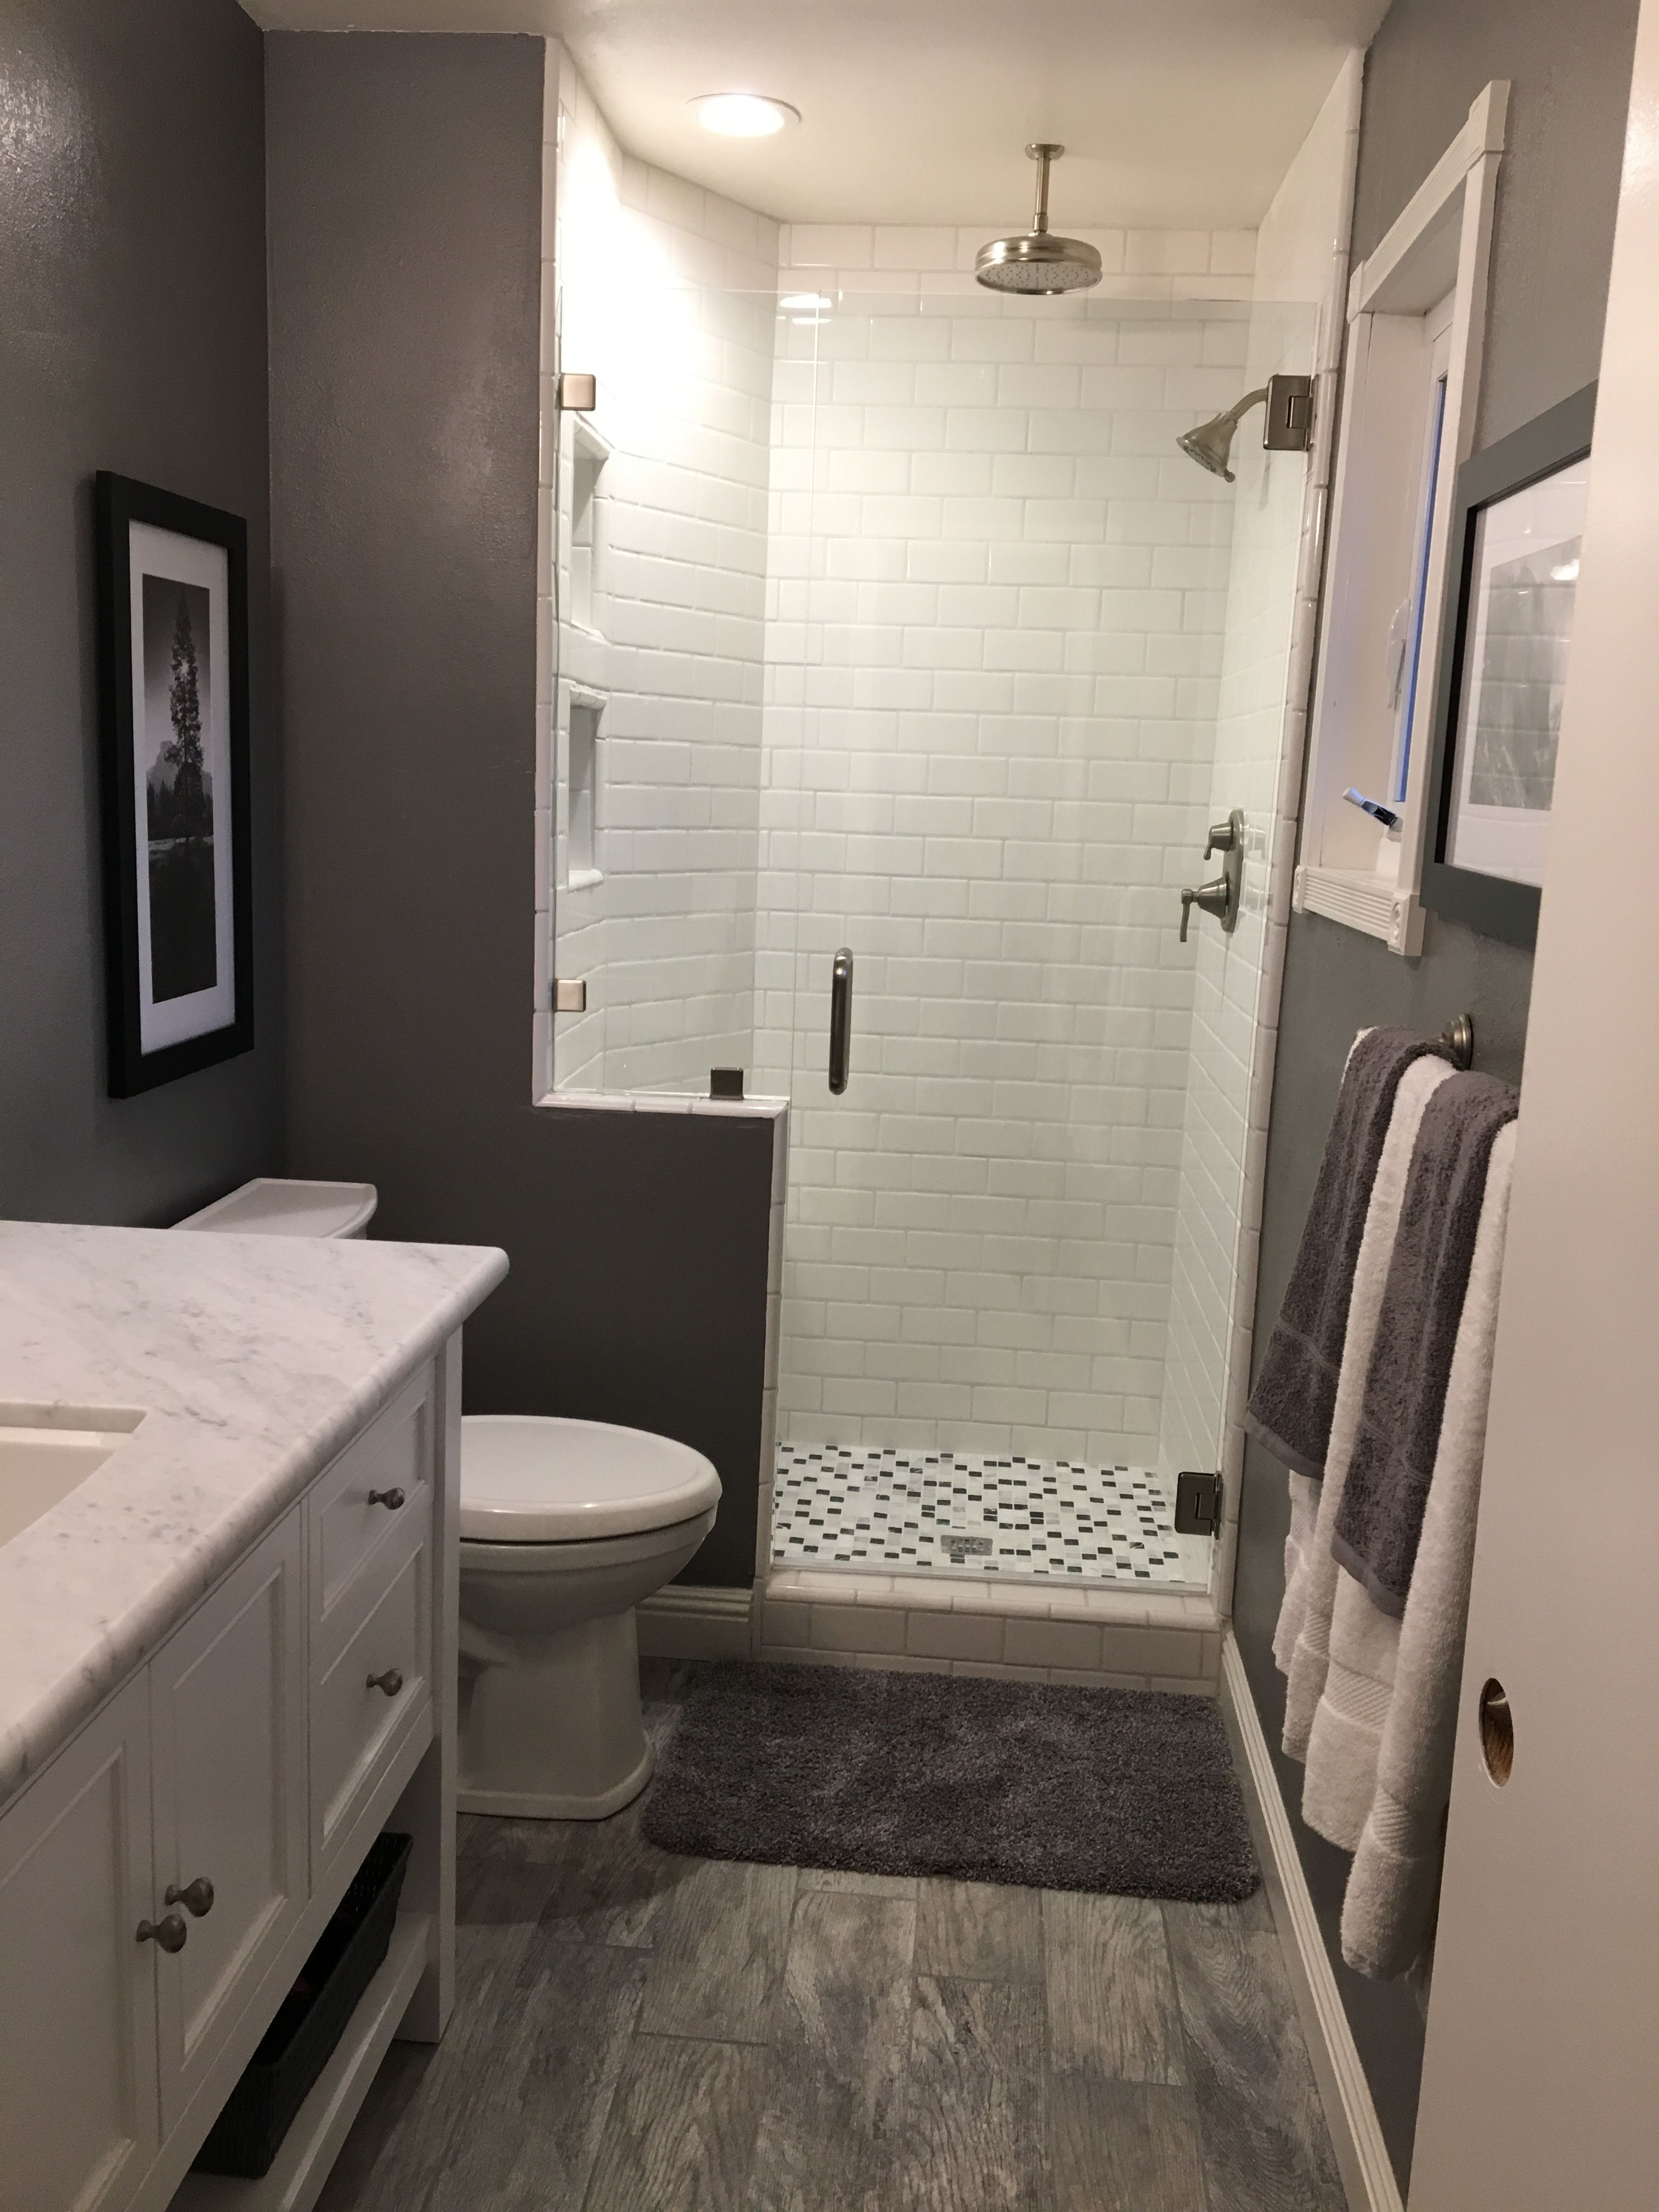 29 Gray And White Bathroom Tile Ideas And Pictures White Bathroom Tiles Gray And White Bathroom Budget Bathroom Remodel